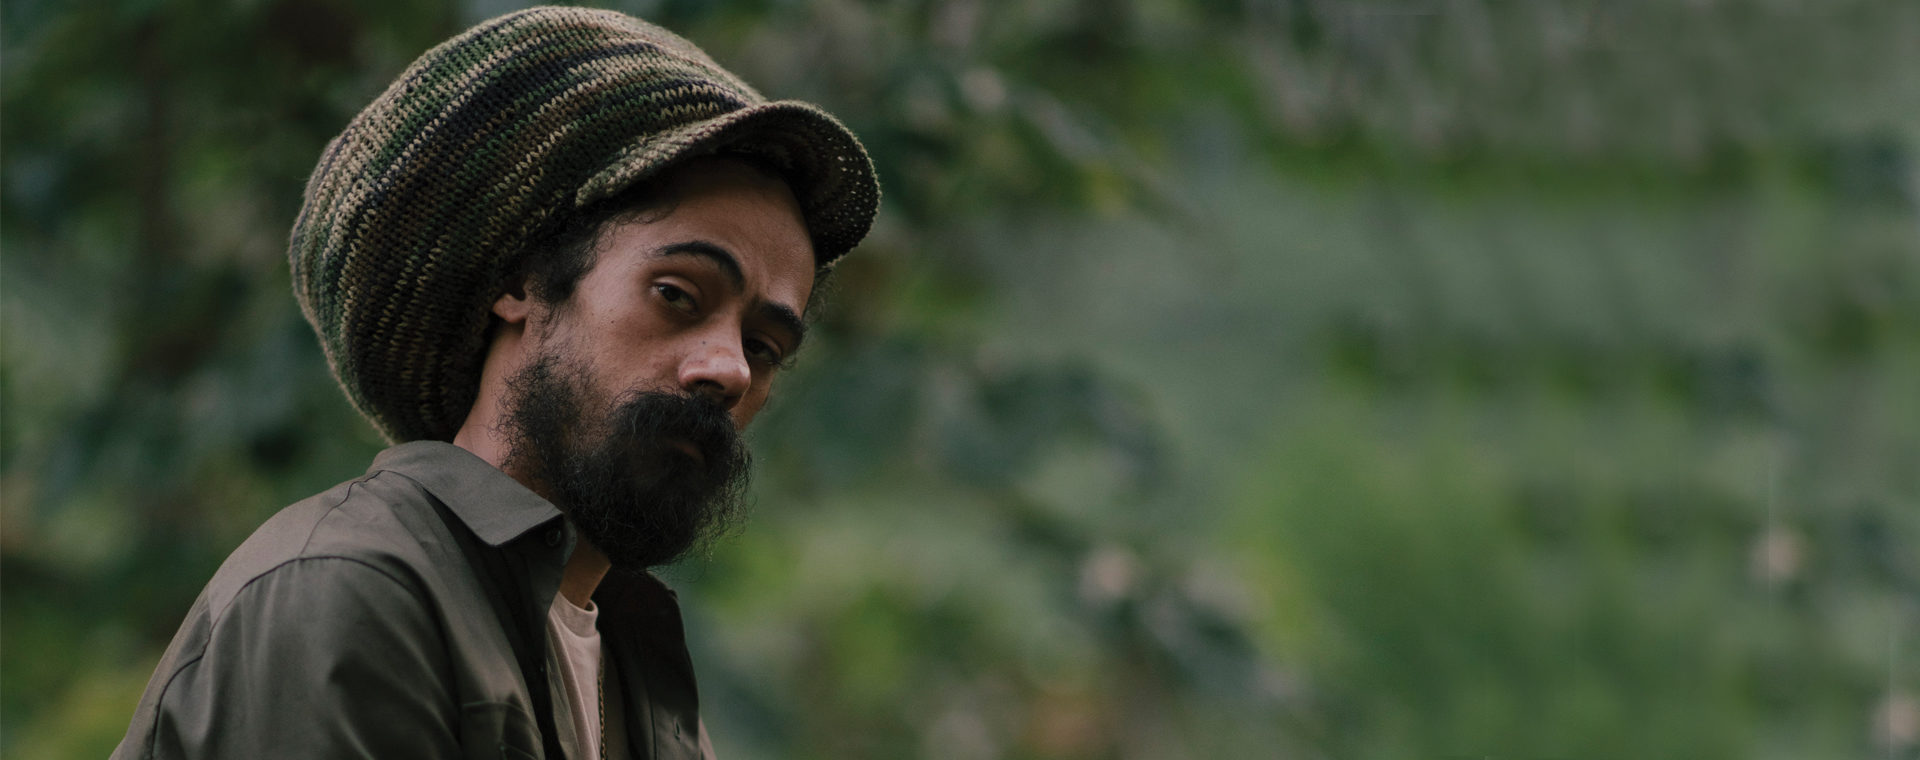 LATEST ISSUE <br><b>Damian Marley</b></br>